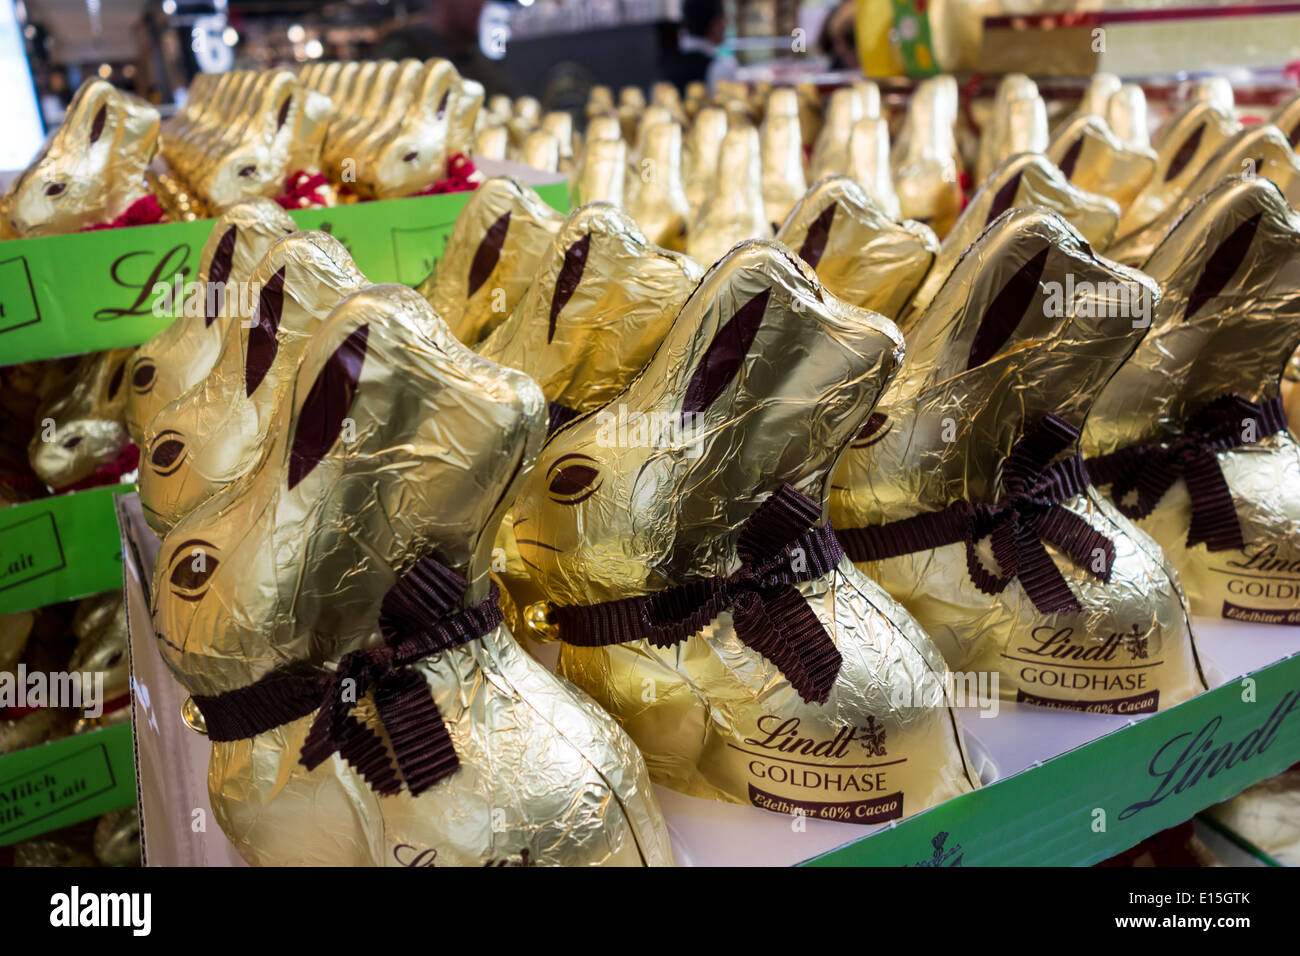 Lindt chocolate Easter rabbit pallet in a store - Stock Image